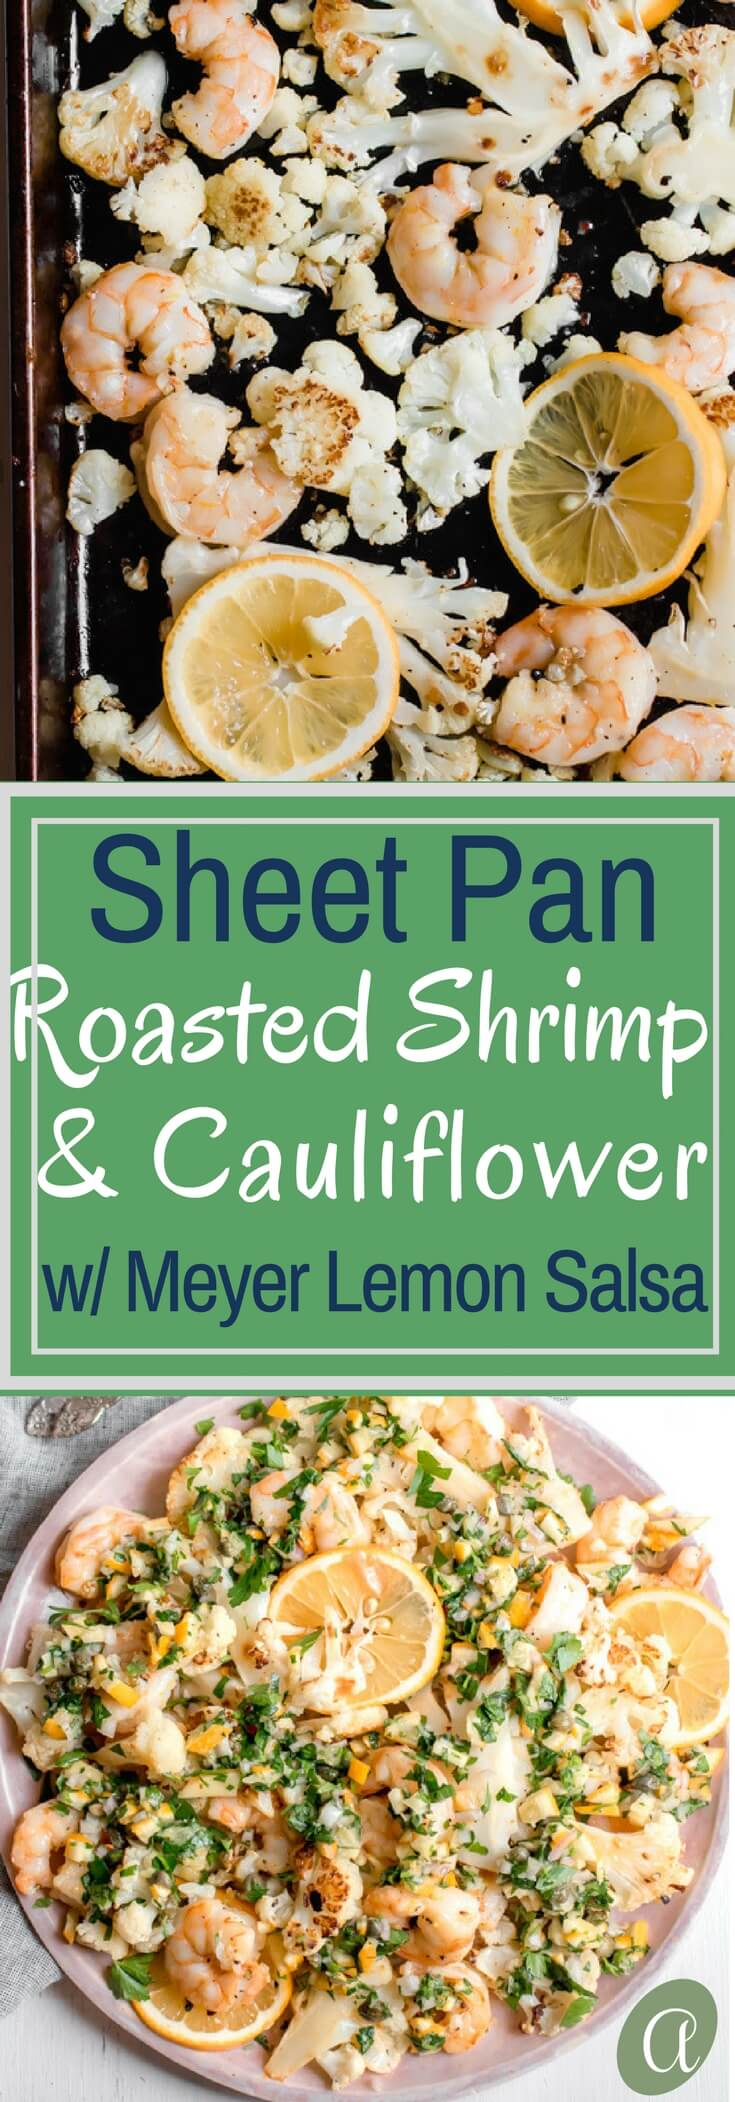 Quick and Easy Sheet Pan Meal! Perfectly roasted shrimp and cauliflower tossed with a bright and tangy Meyer lemon salsa. Dinner is done in 13 minutes! Paleo, gluten-free, keto friendly, Whole30, quick, healthy, and easy.